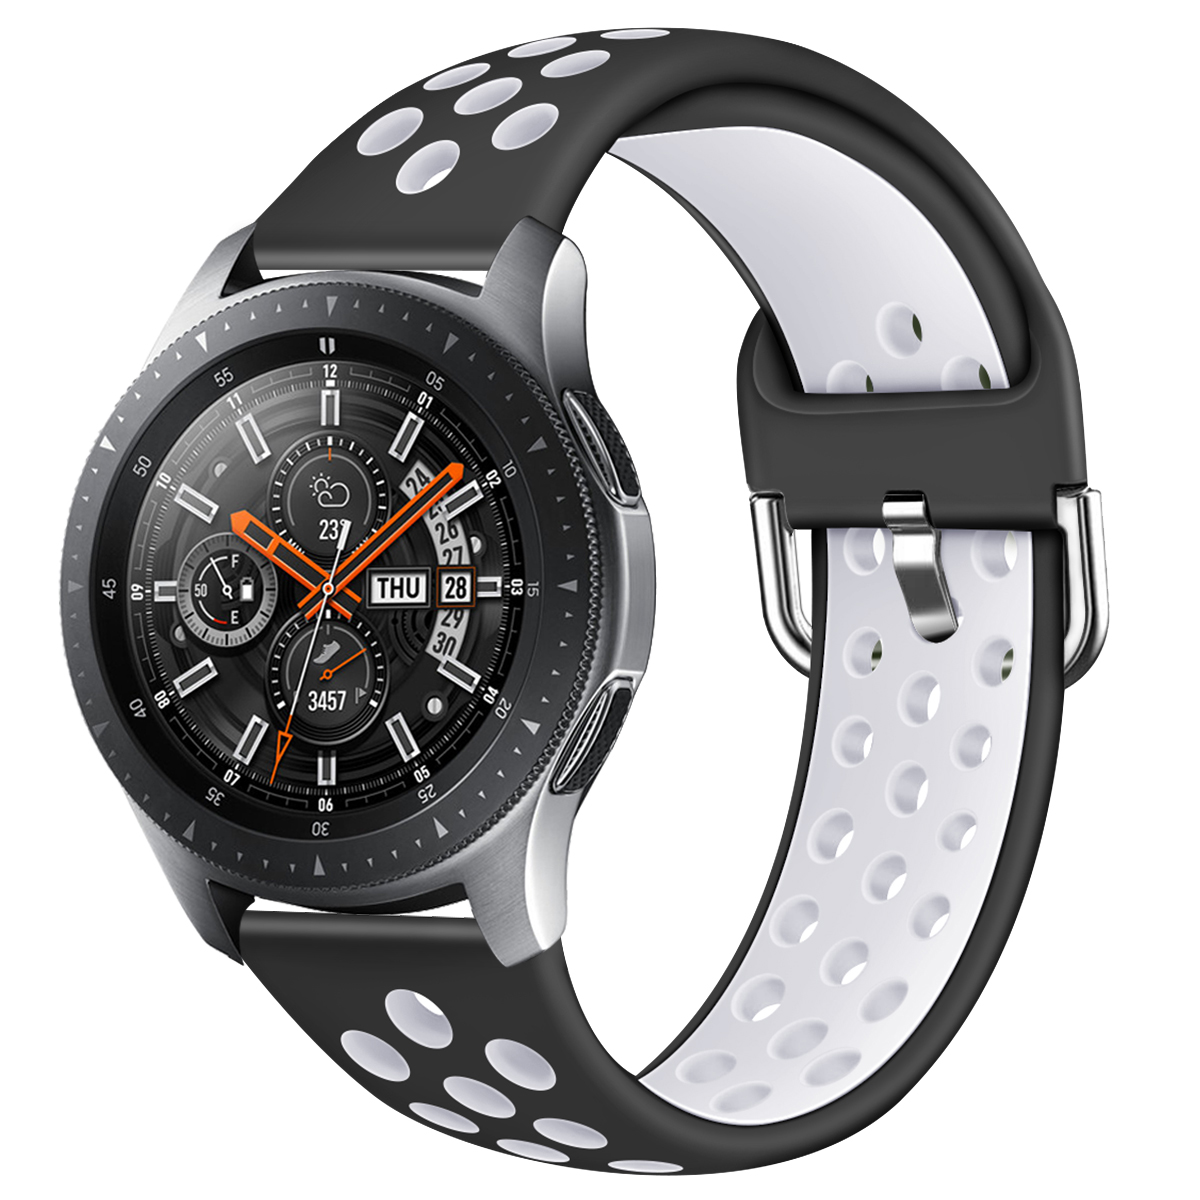 Compatible With Samsung Galaxy Watch 46mm 22mm Silicone Watchband Replacement Bracelet Band Strap For SM-R800 Huawei GT 2  91002